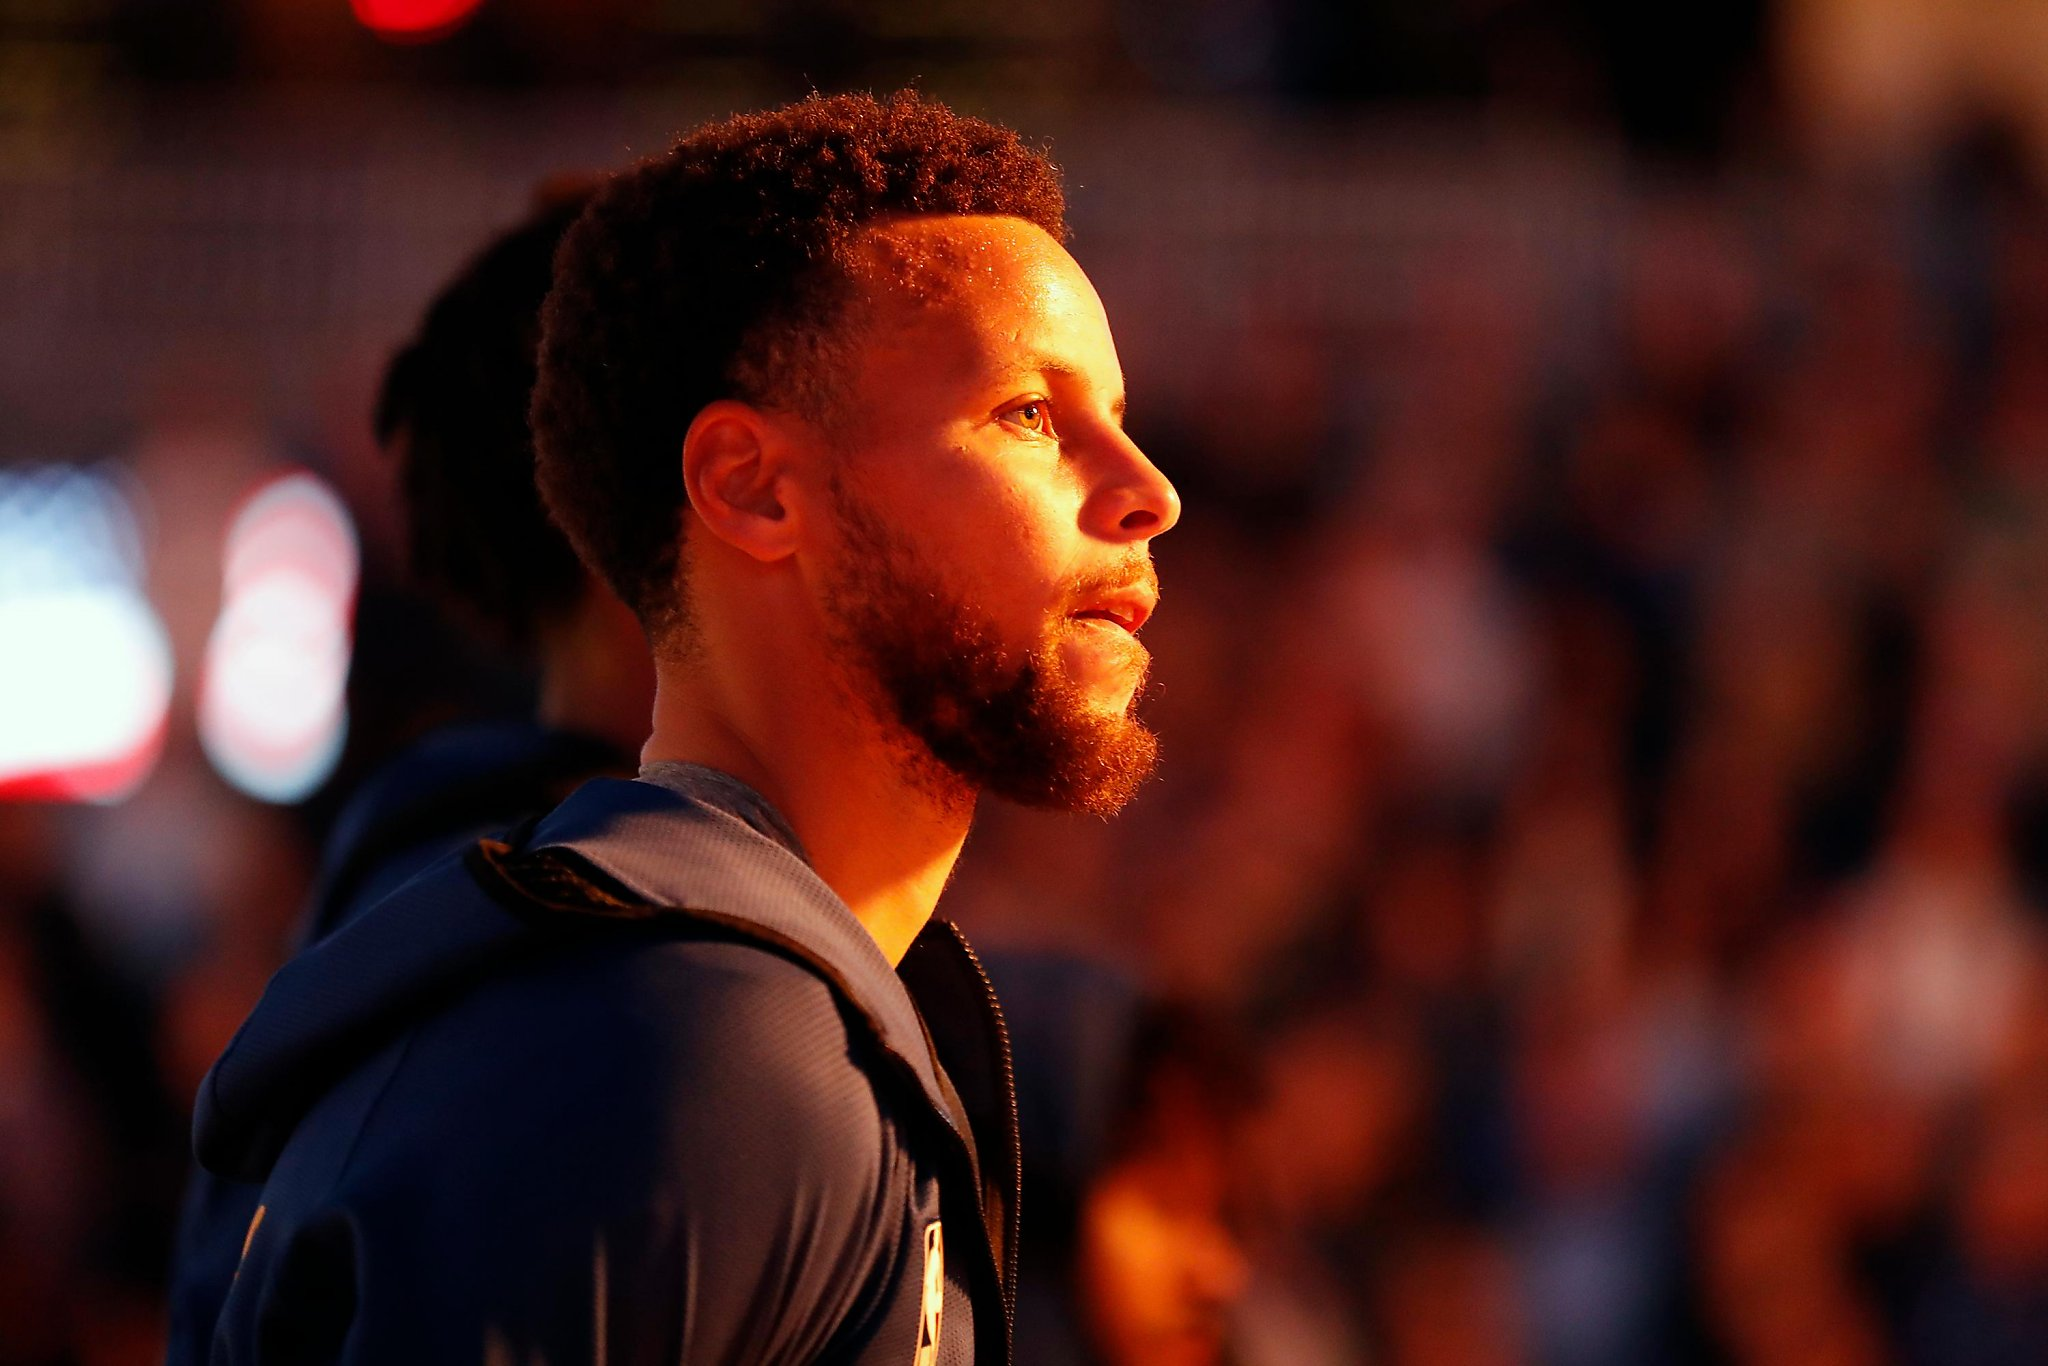 Warriors' Steph Curry, out vs. 76ers, 'has no specific risk' for coronavirus